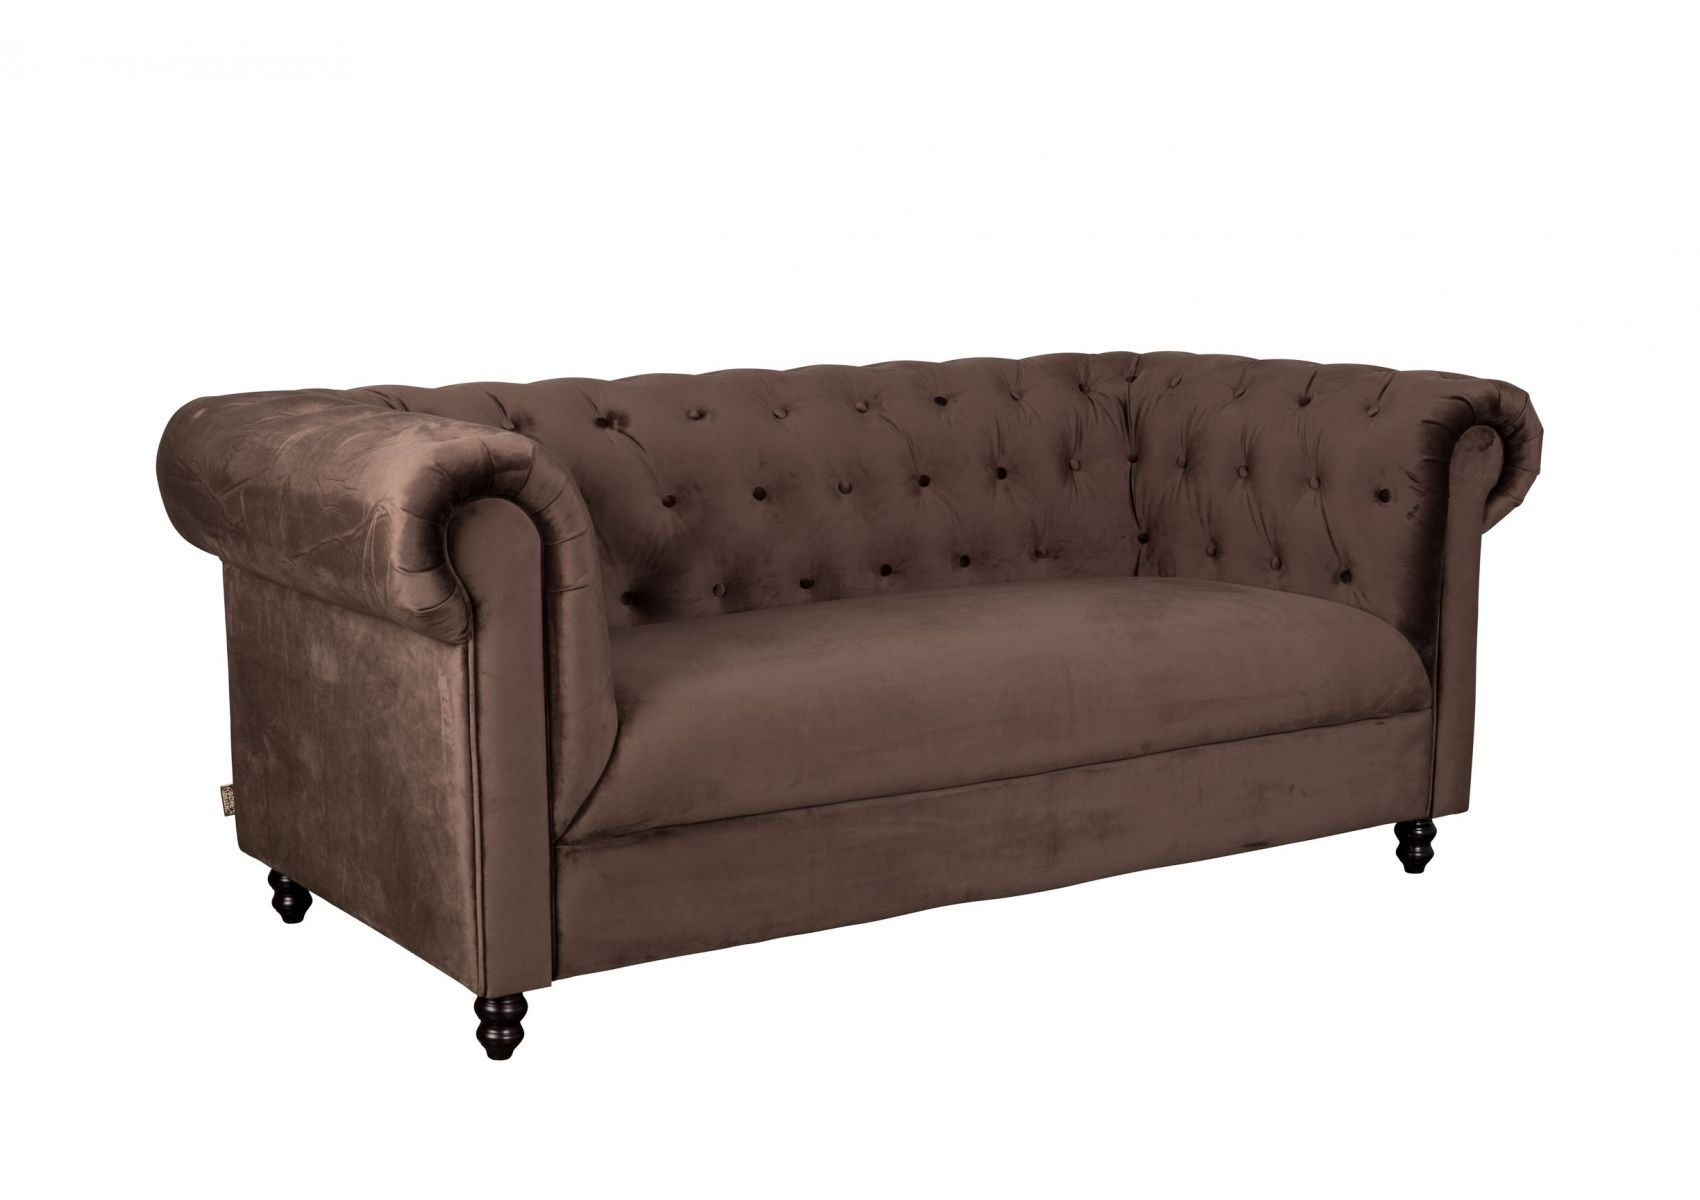 Canap design en tissu de la collection chesterfield de - Canape chesterfield but ...